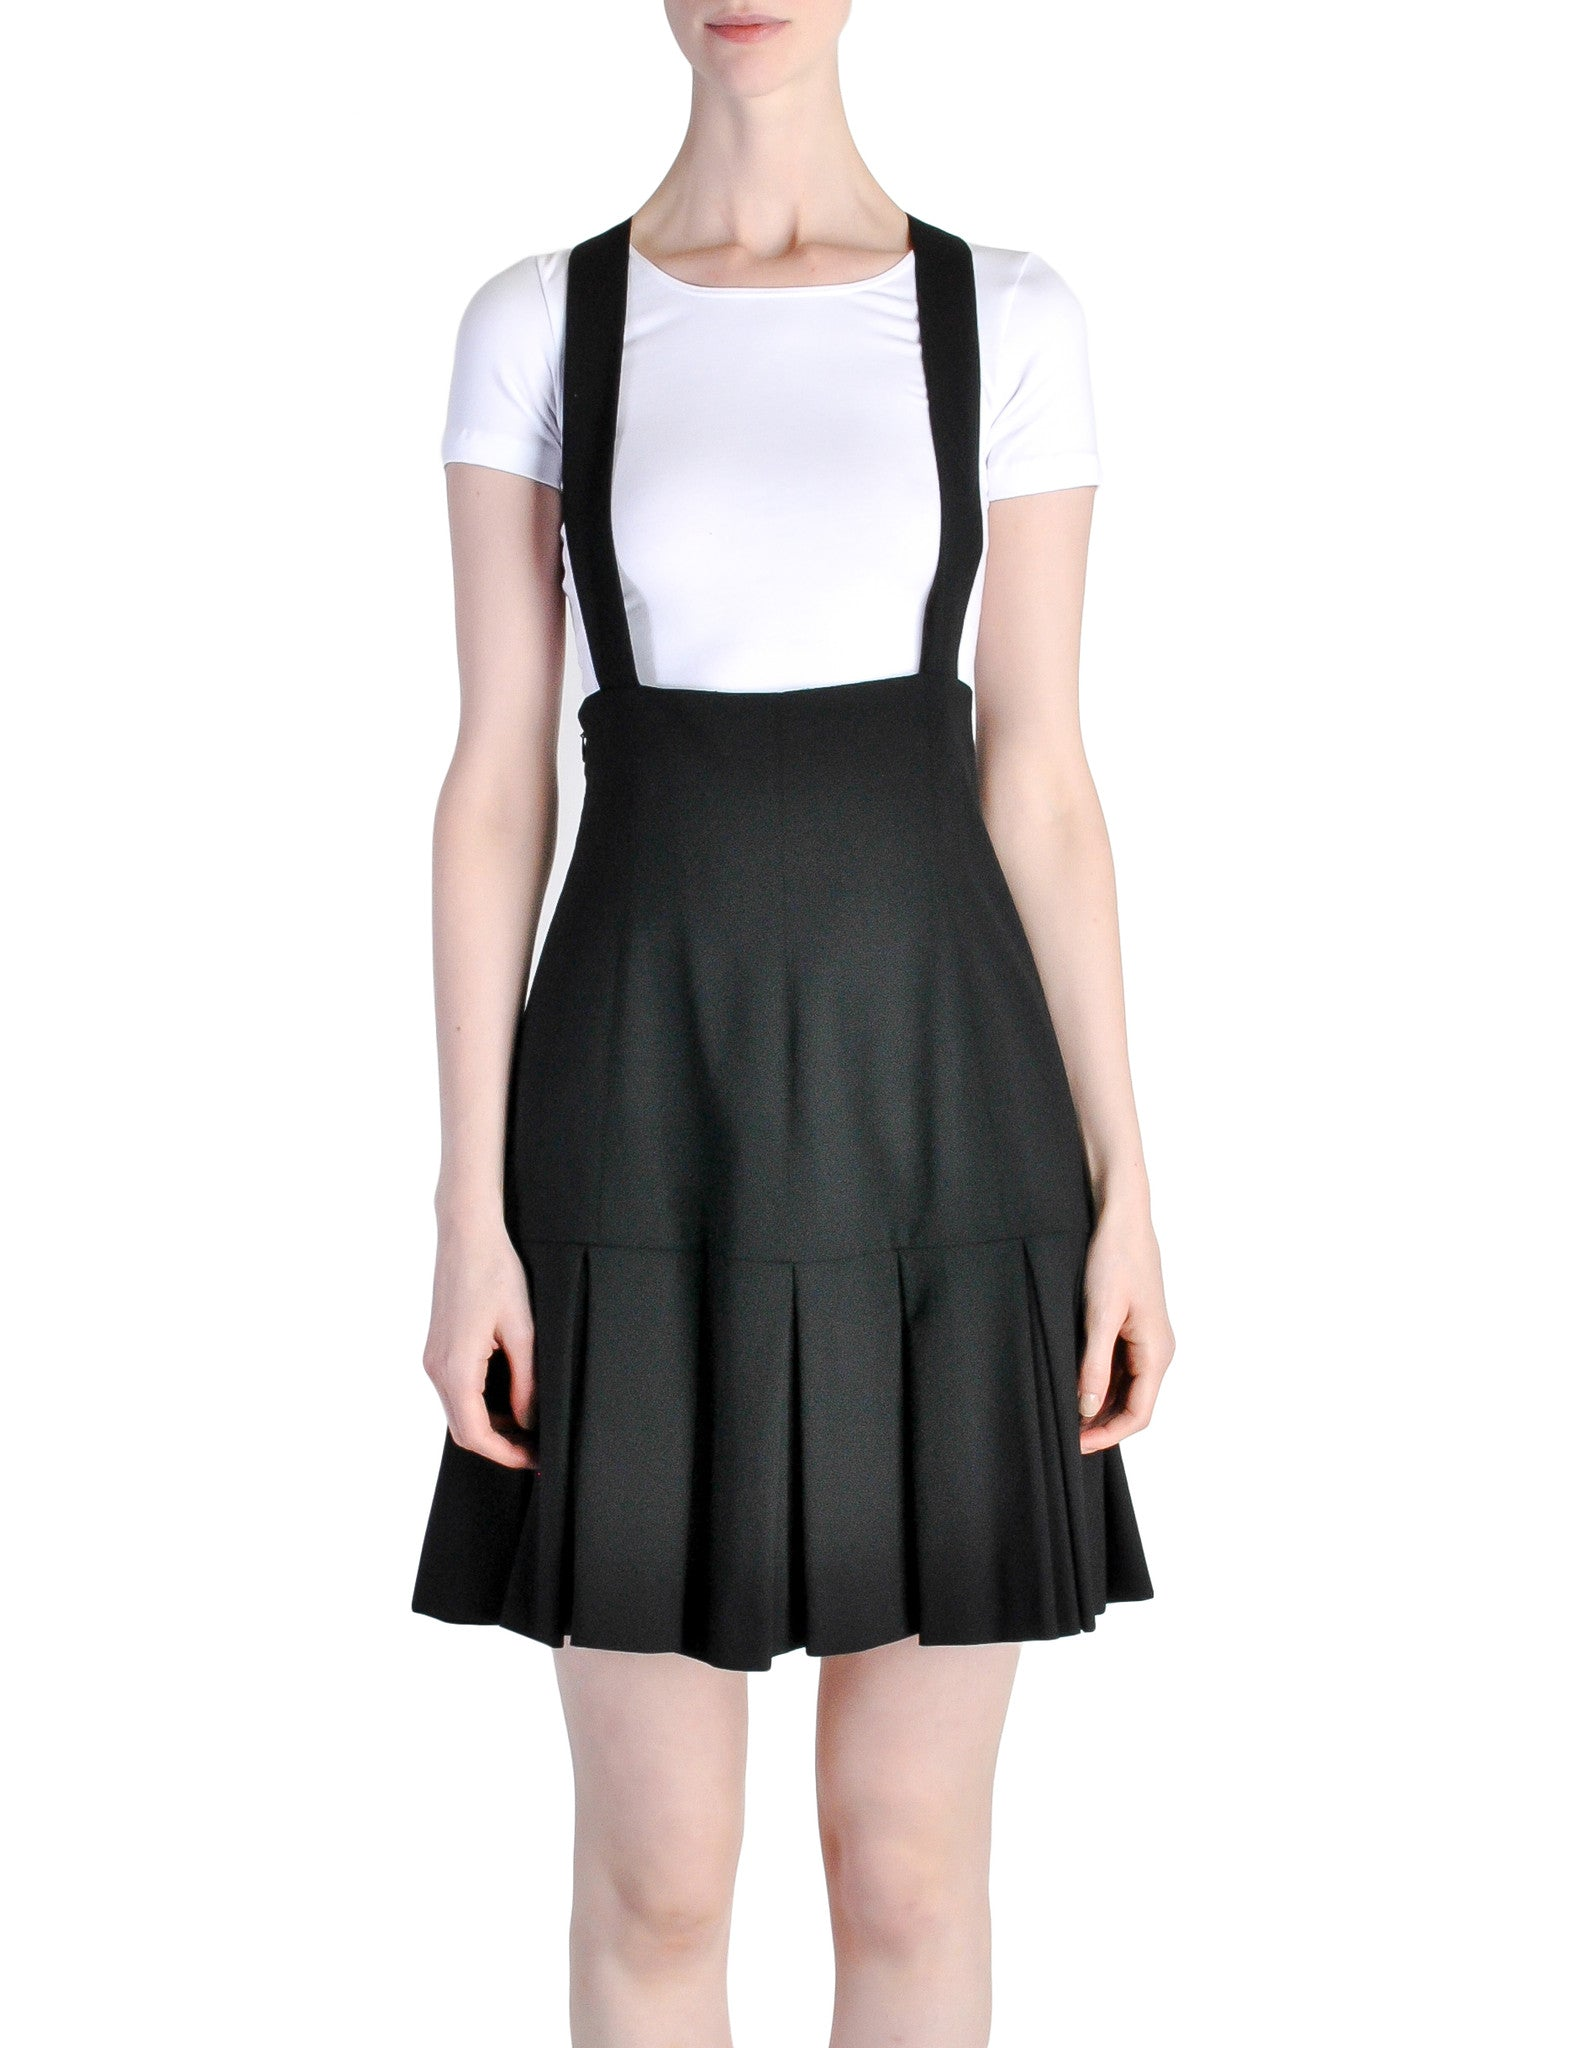 Karl Lagerfeld Vintage Black Pleated Suspender Skirt - Amarcord Vintage Fashion  - 1